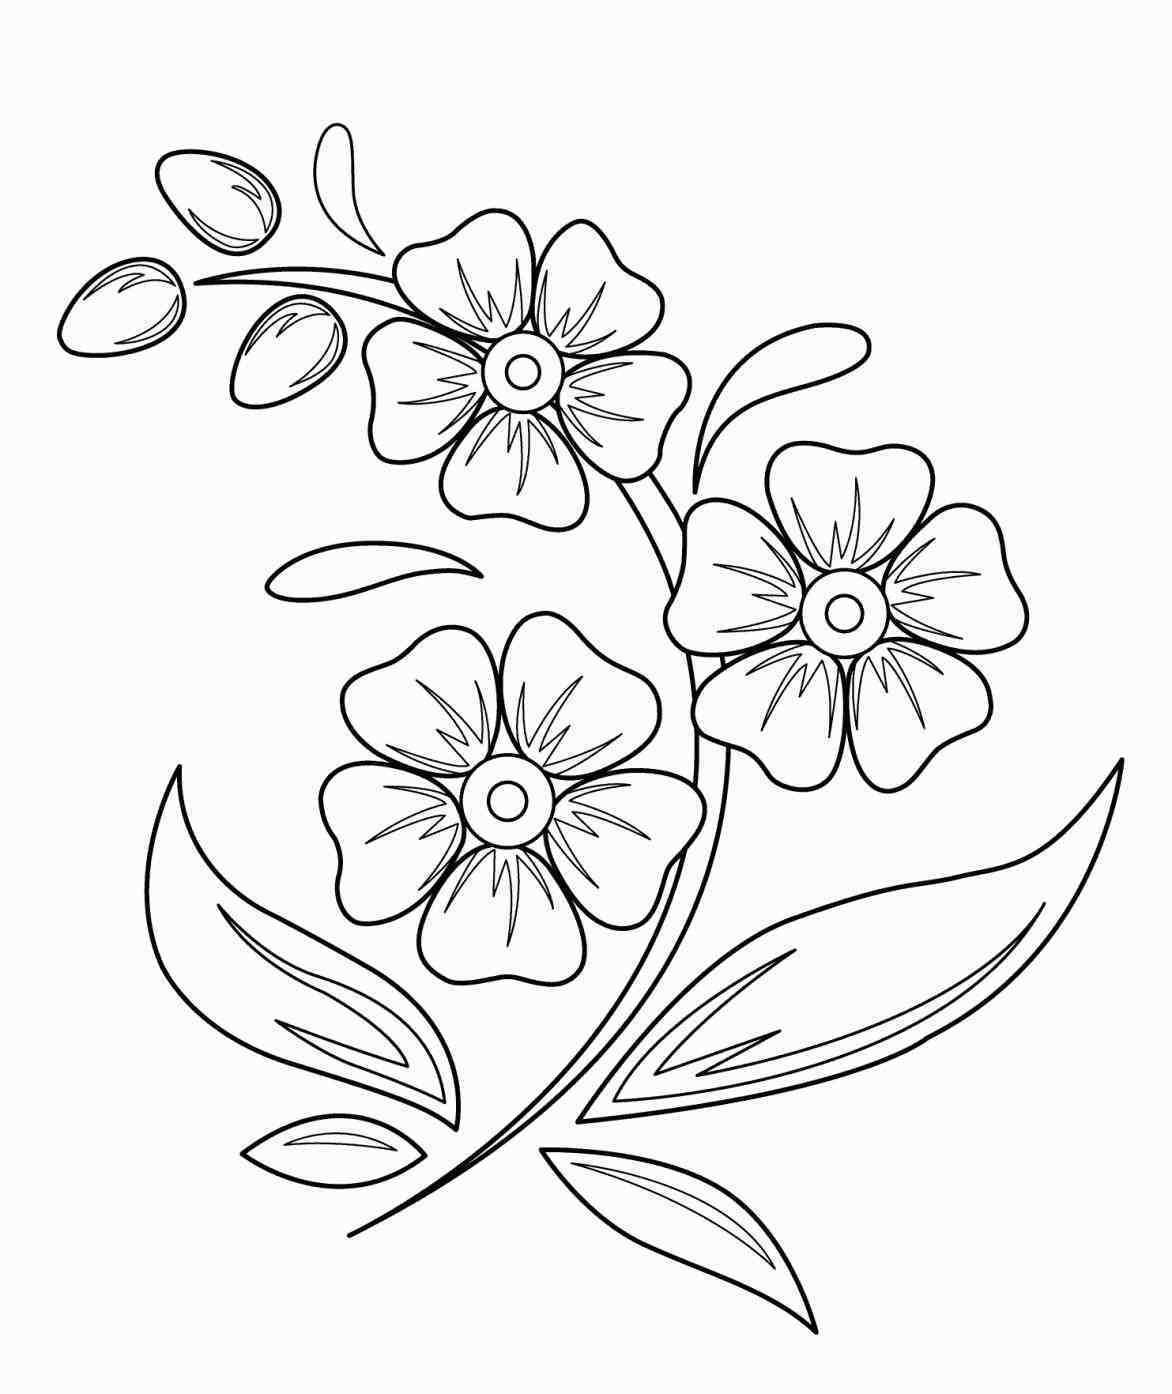 easy cute rose coloring pages free rose flower drawing download free clip art free coloring easy rose pages cute